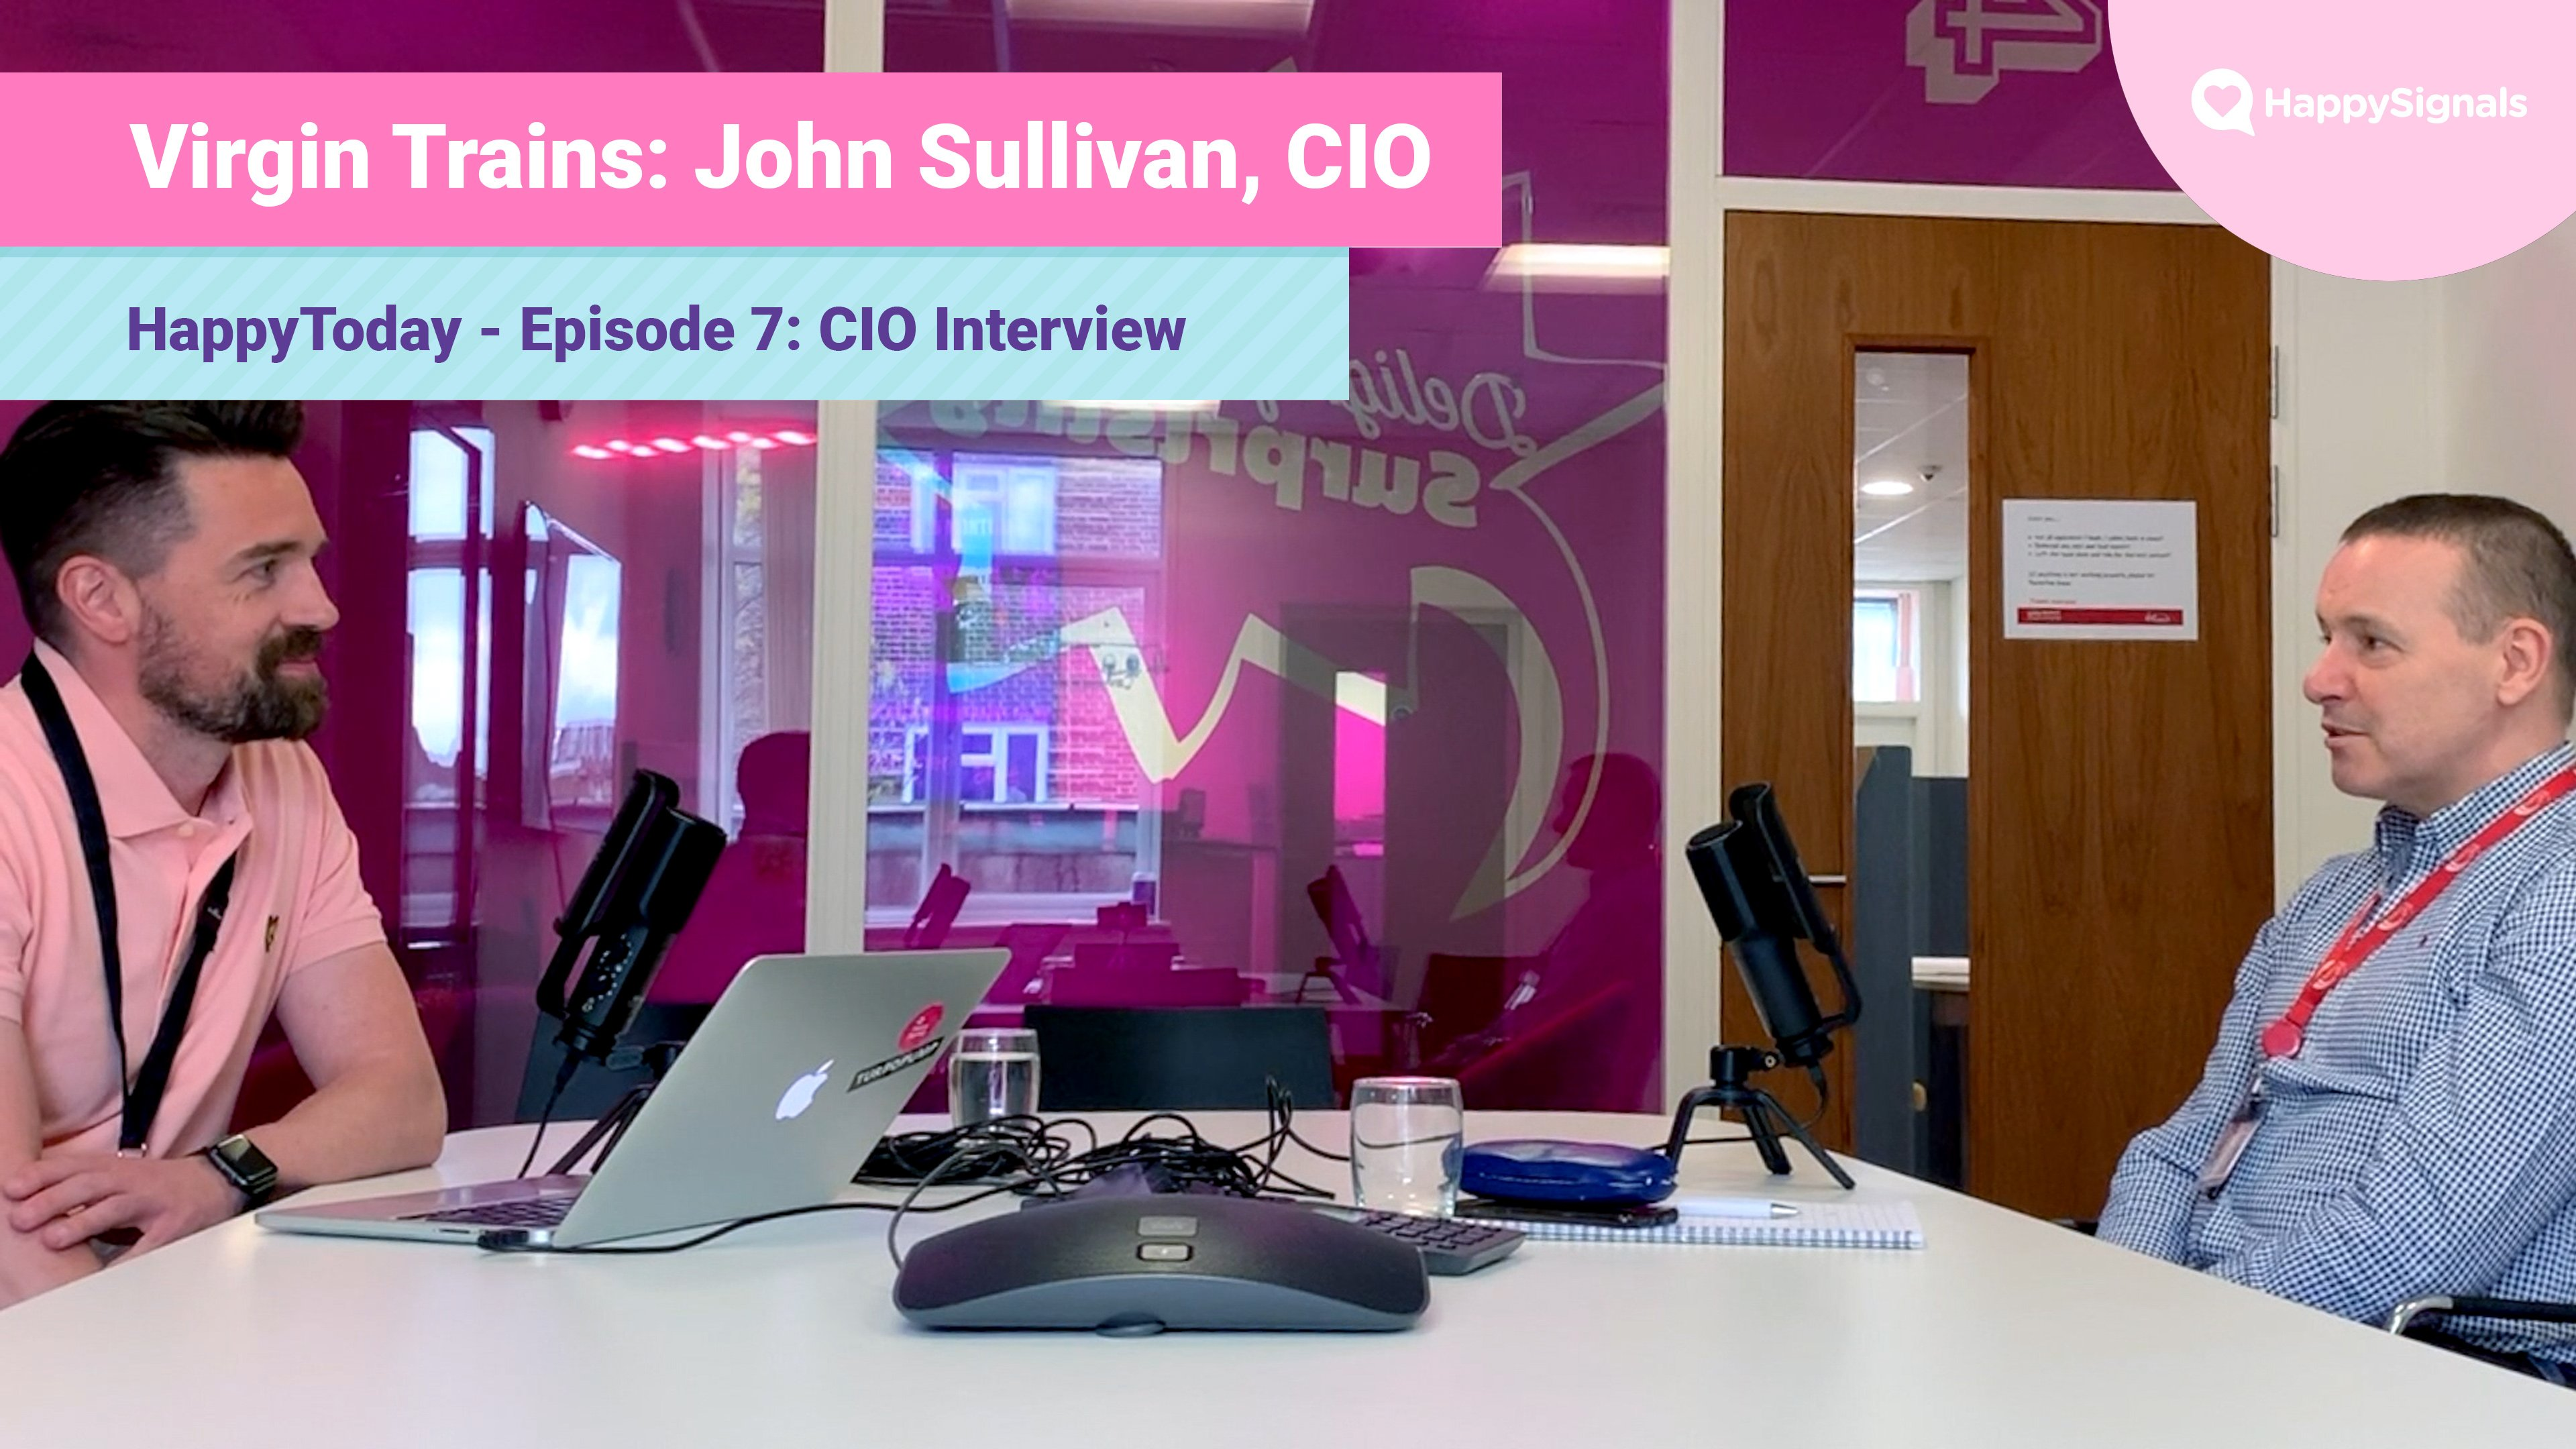 7. CIO Interview: John Sullivan, Virgin Trains